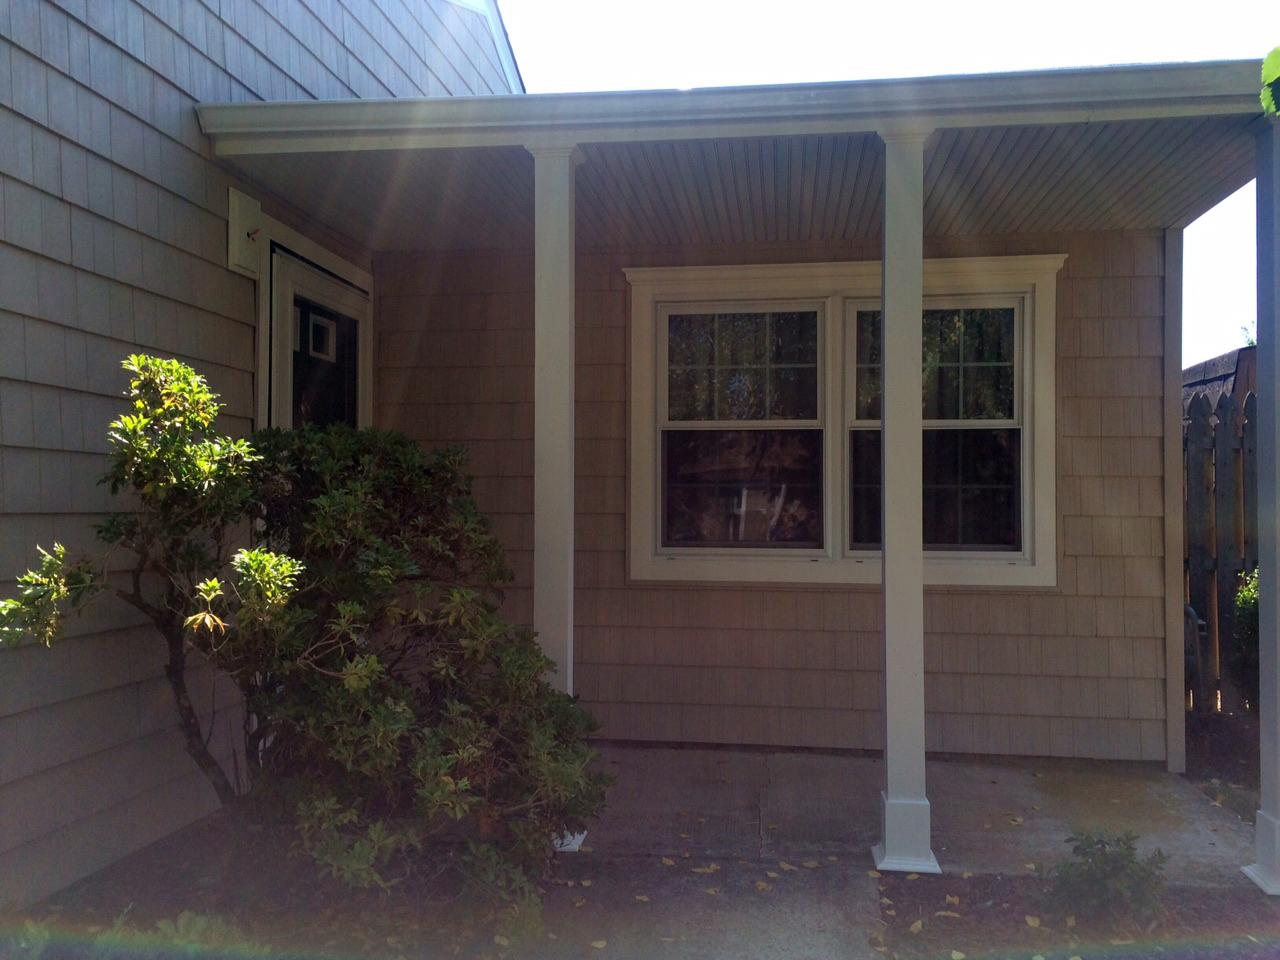 Siding Siding Projects Kp Perfection Vinyl Cedar Shake